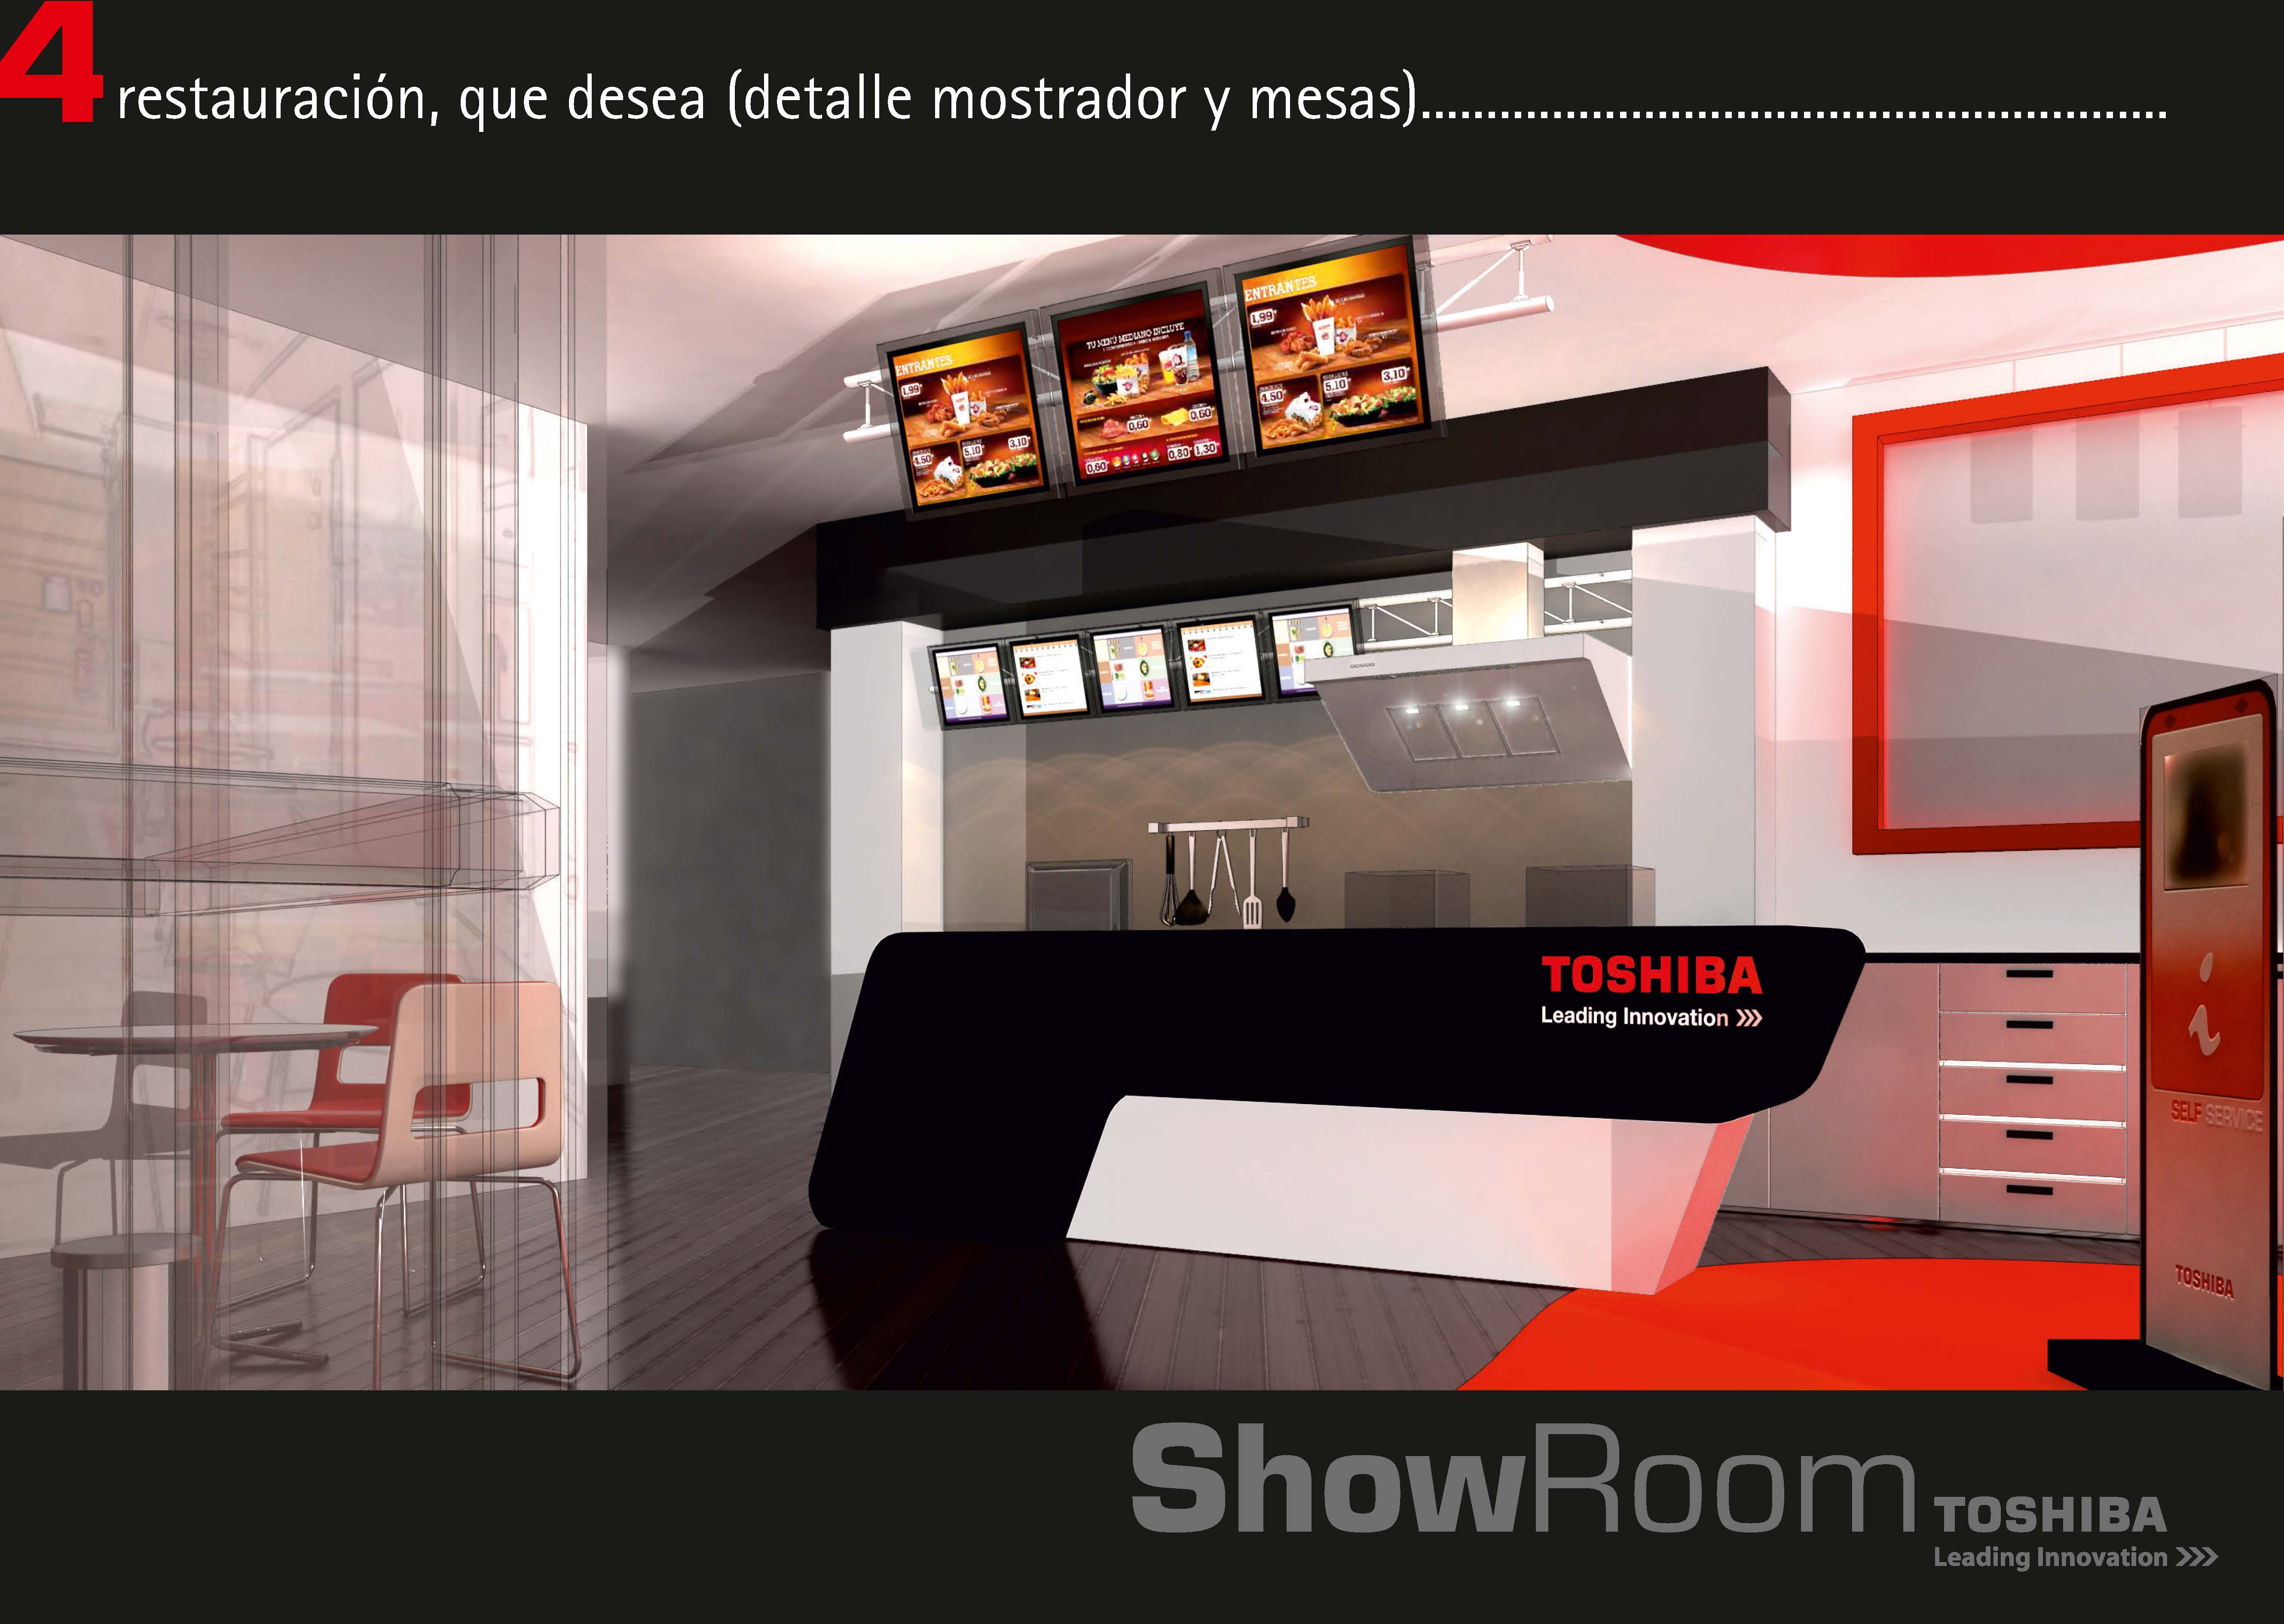 Expo TOSHIBA ShowRoom Madrid 3D (9).jpg